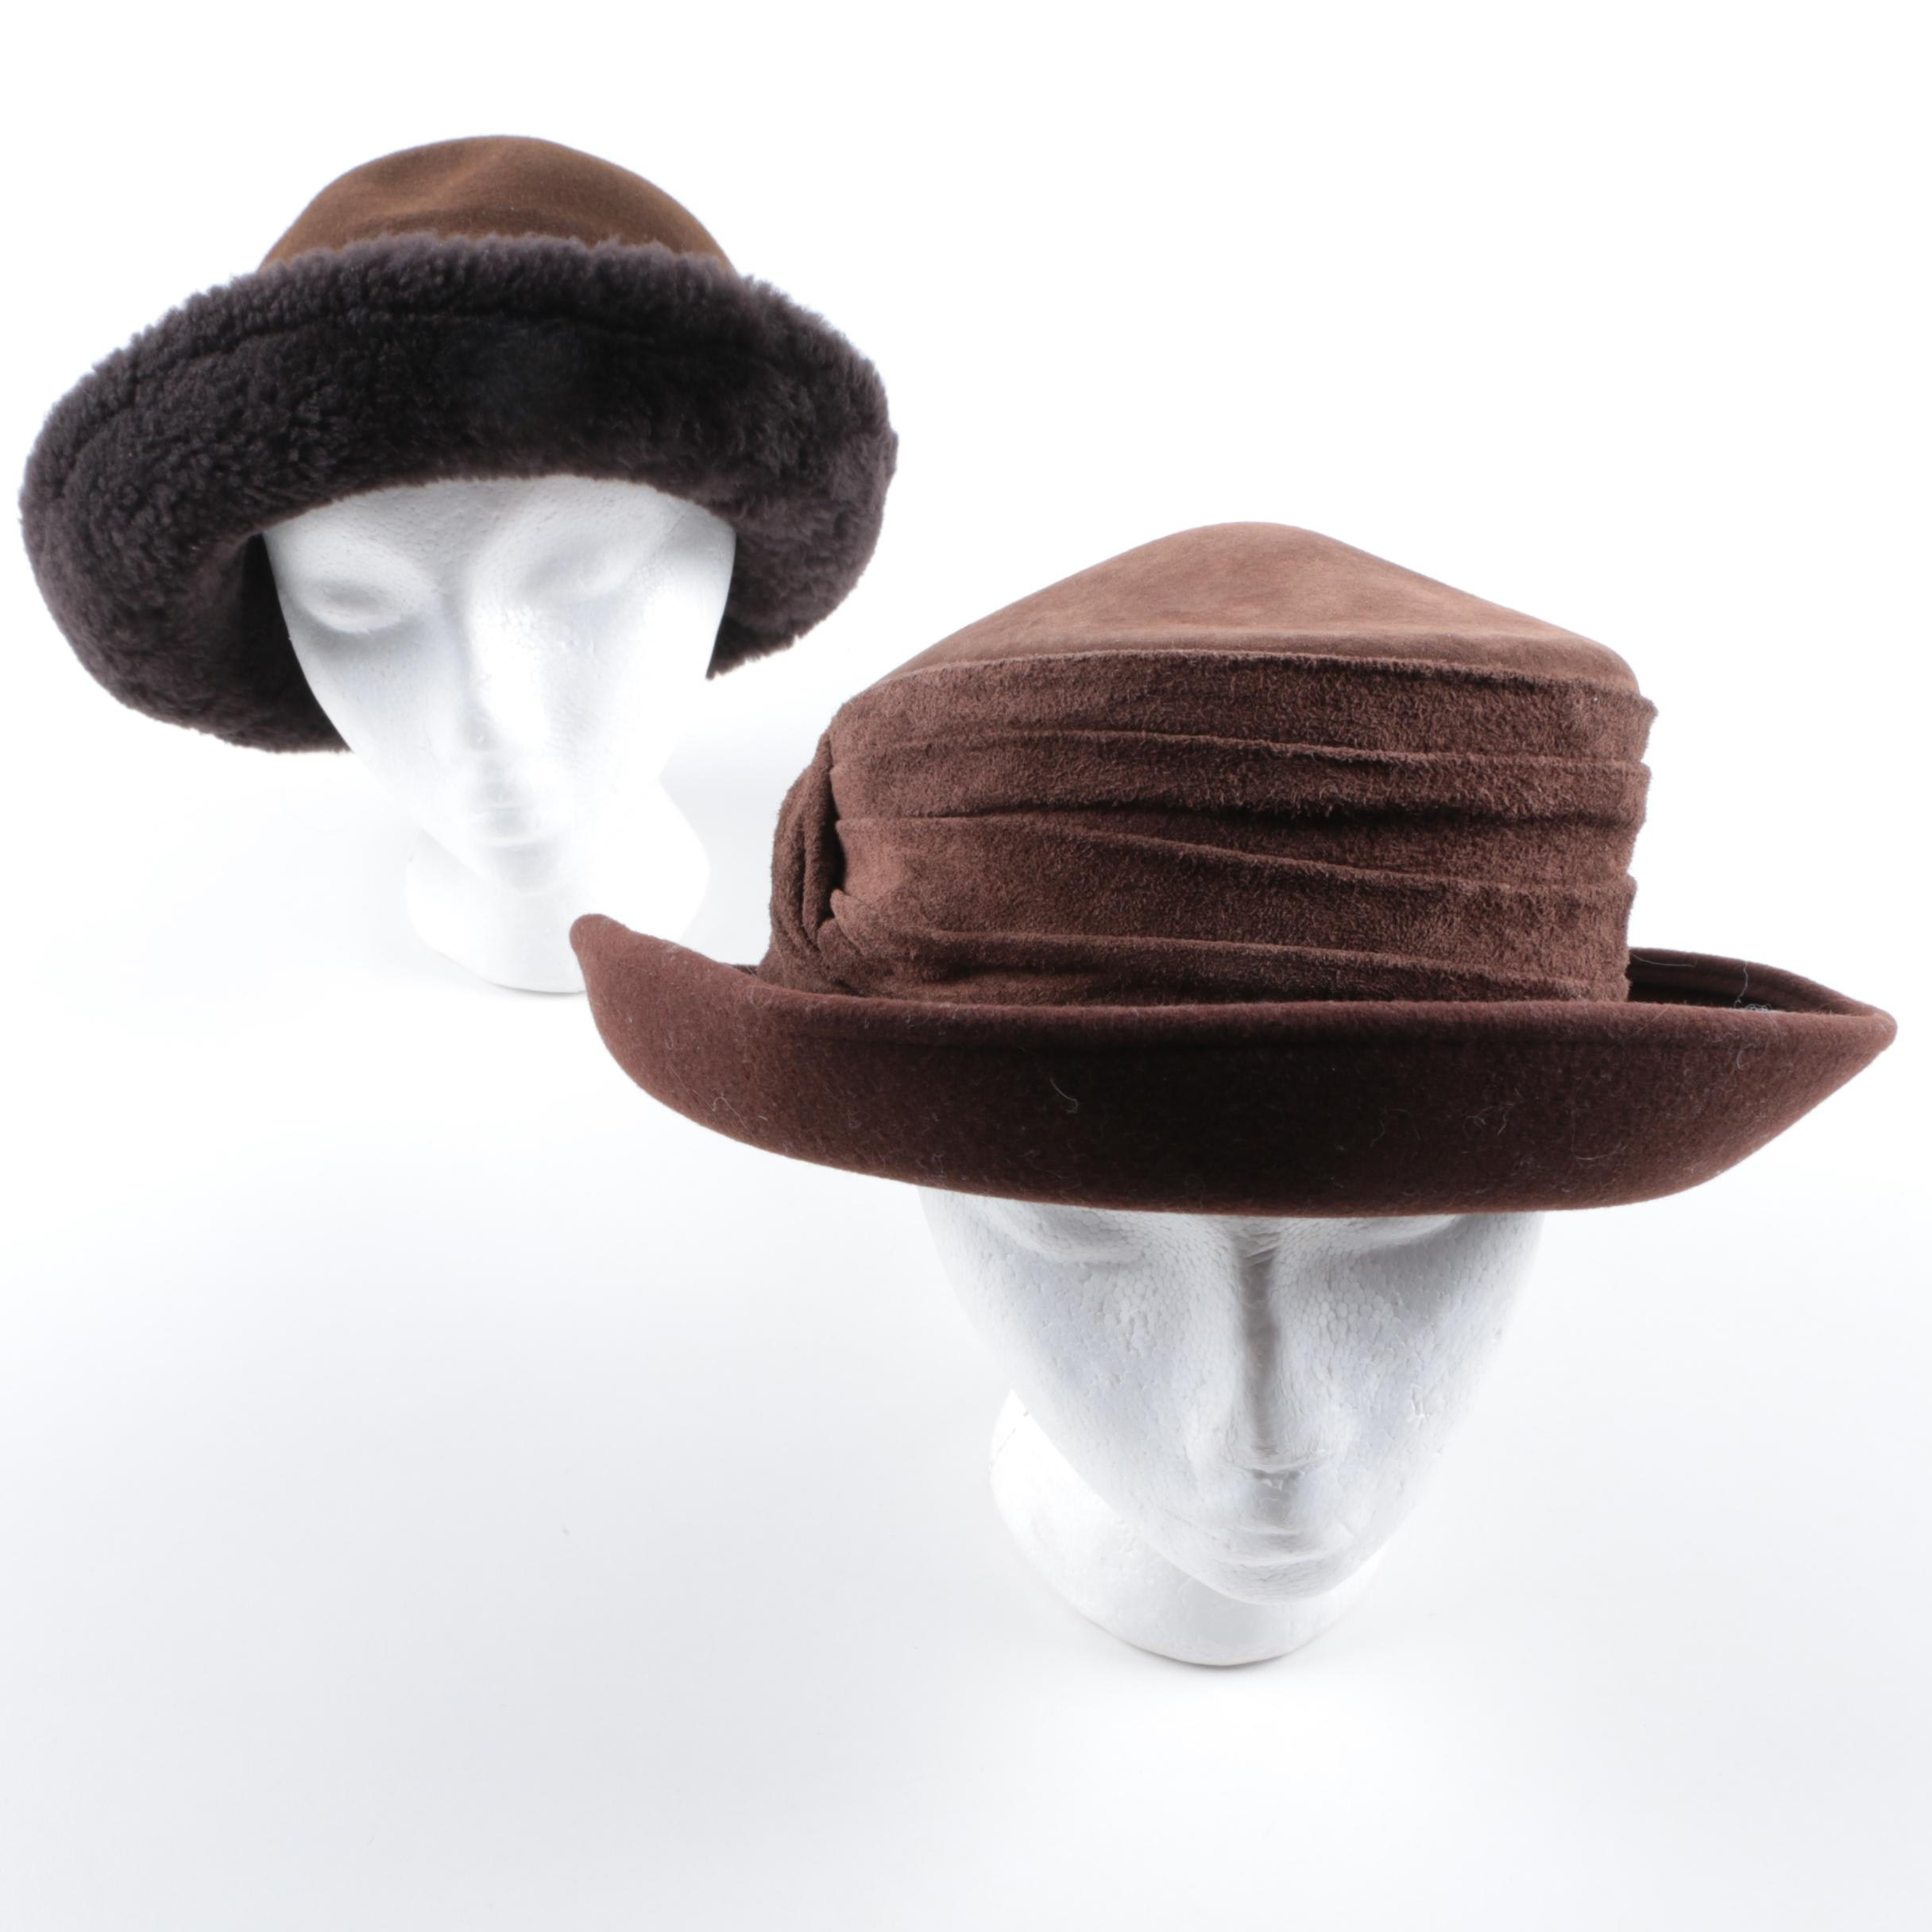 Bollman Wool Felt and Suede Hat and Faux Fur Trimmed Hat